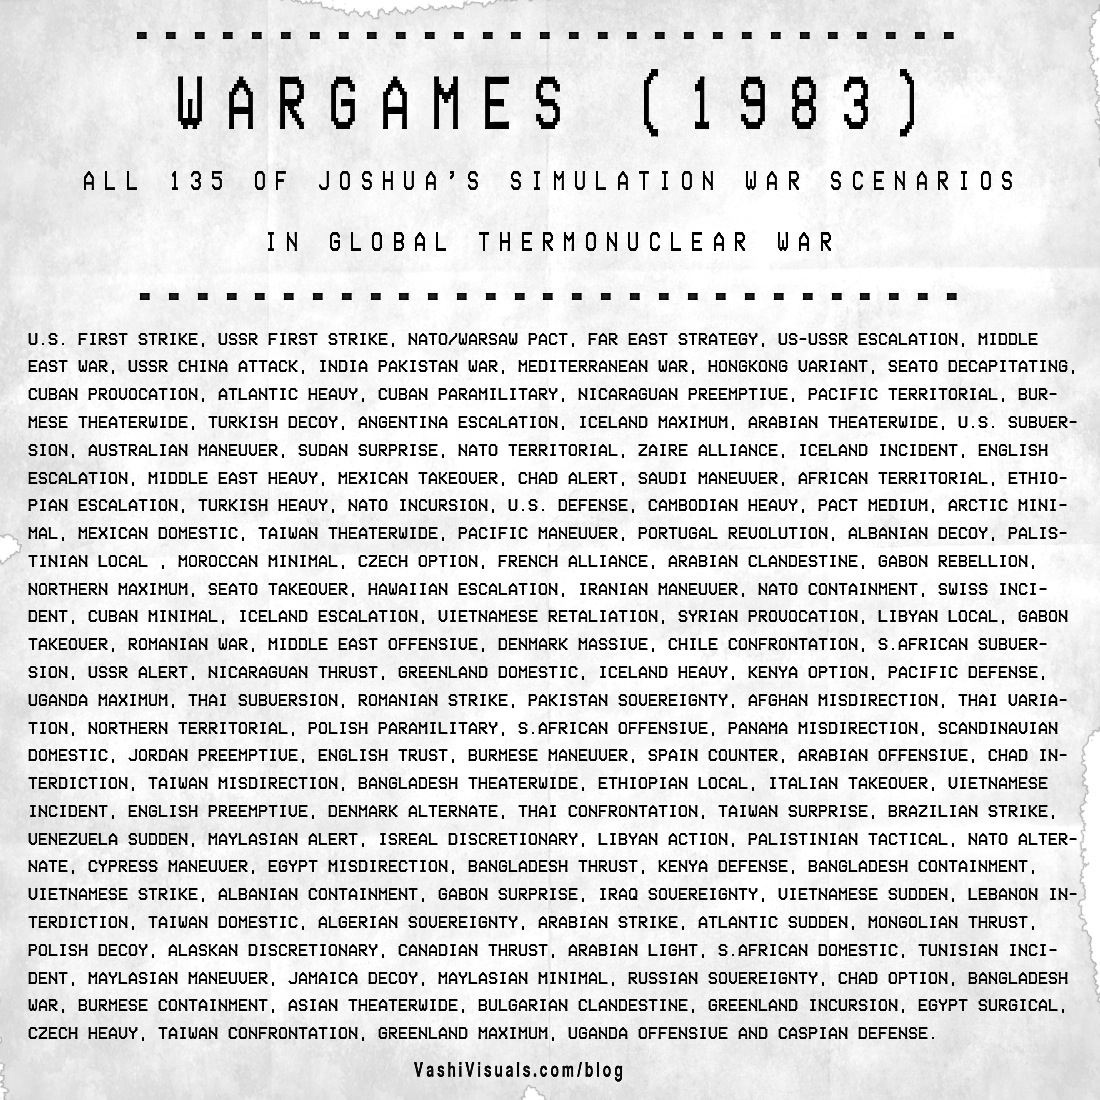 All 135 war simulation options from WARGAMES